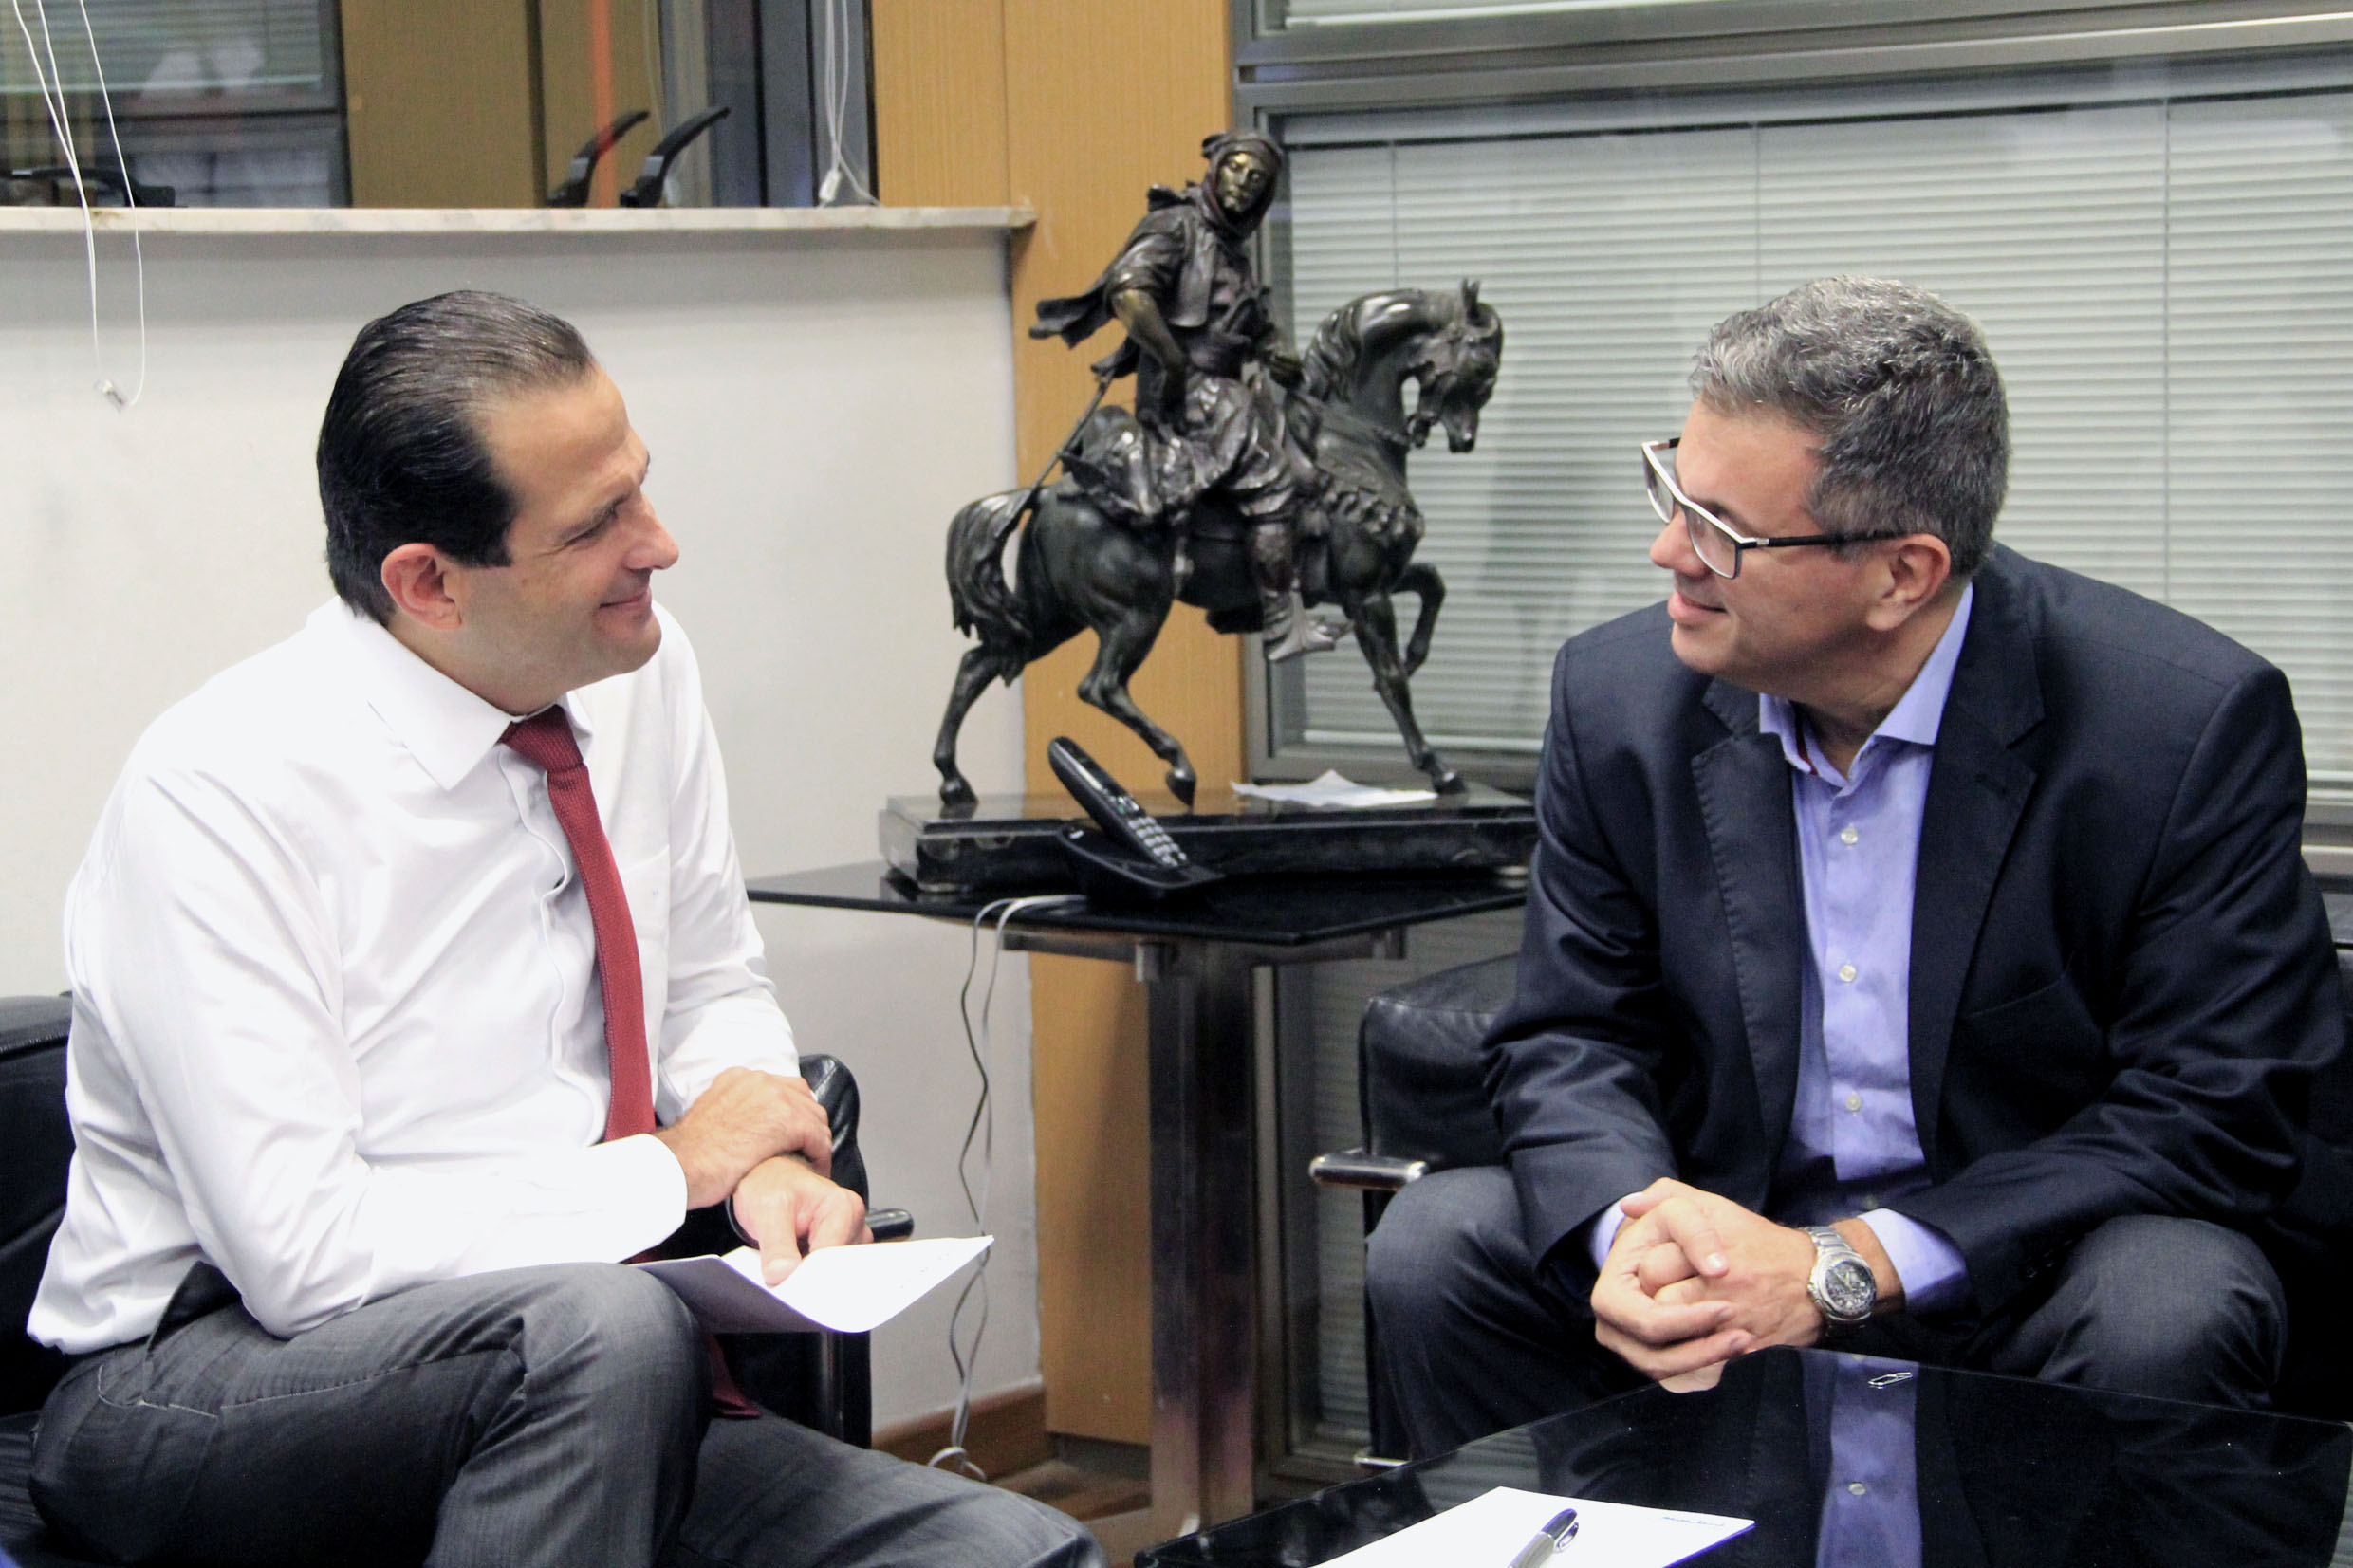 Edmir Chedid e Marcelo Rossi<a style='float:right' href='https://www3.al.sp.gov.br/repositorio/noticia/N-05-2018/fg222713.jpg' target=_blank><img src='/_img/material-file-download-white.png' width='14px' alt='Clique para baixar a imagem'></a>